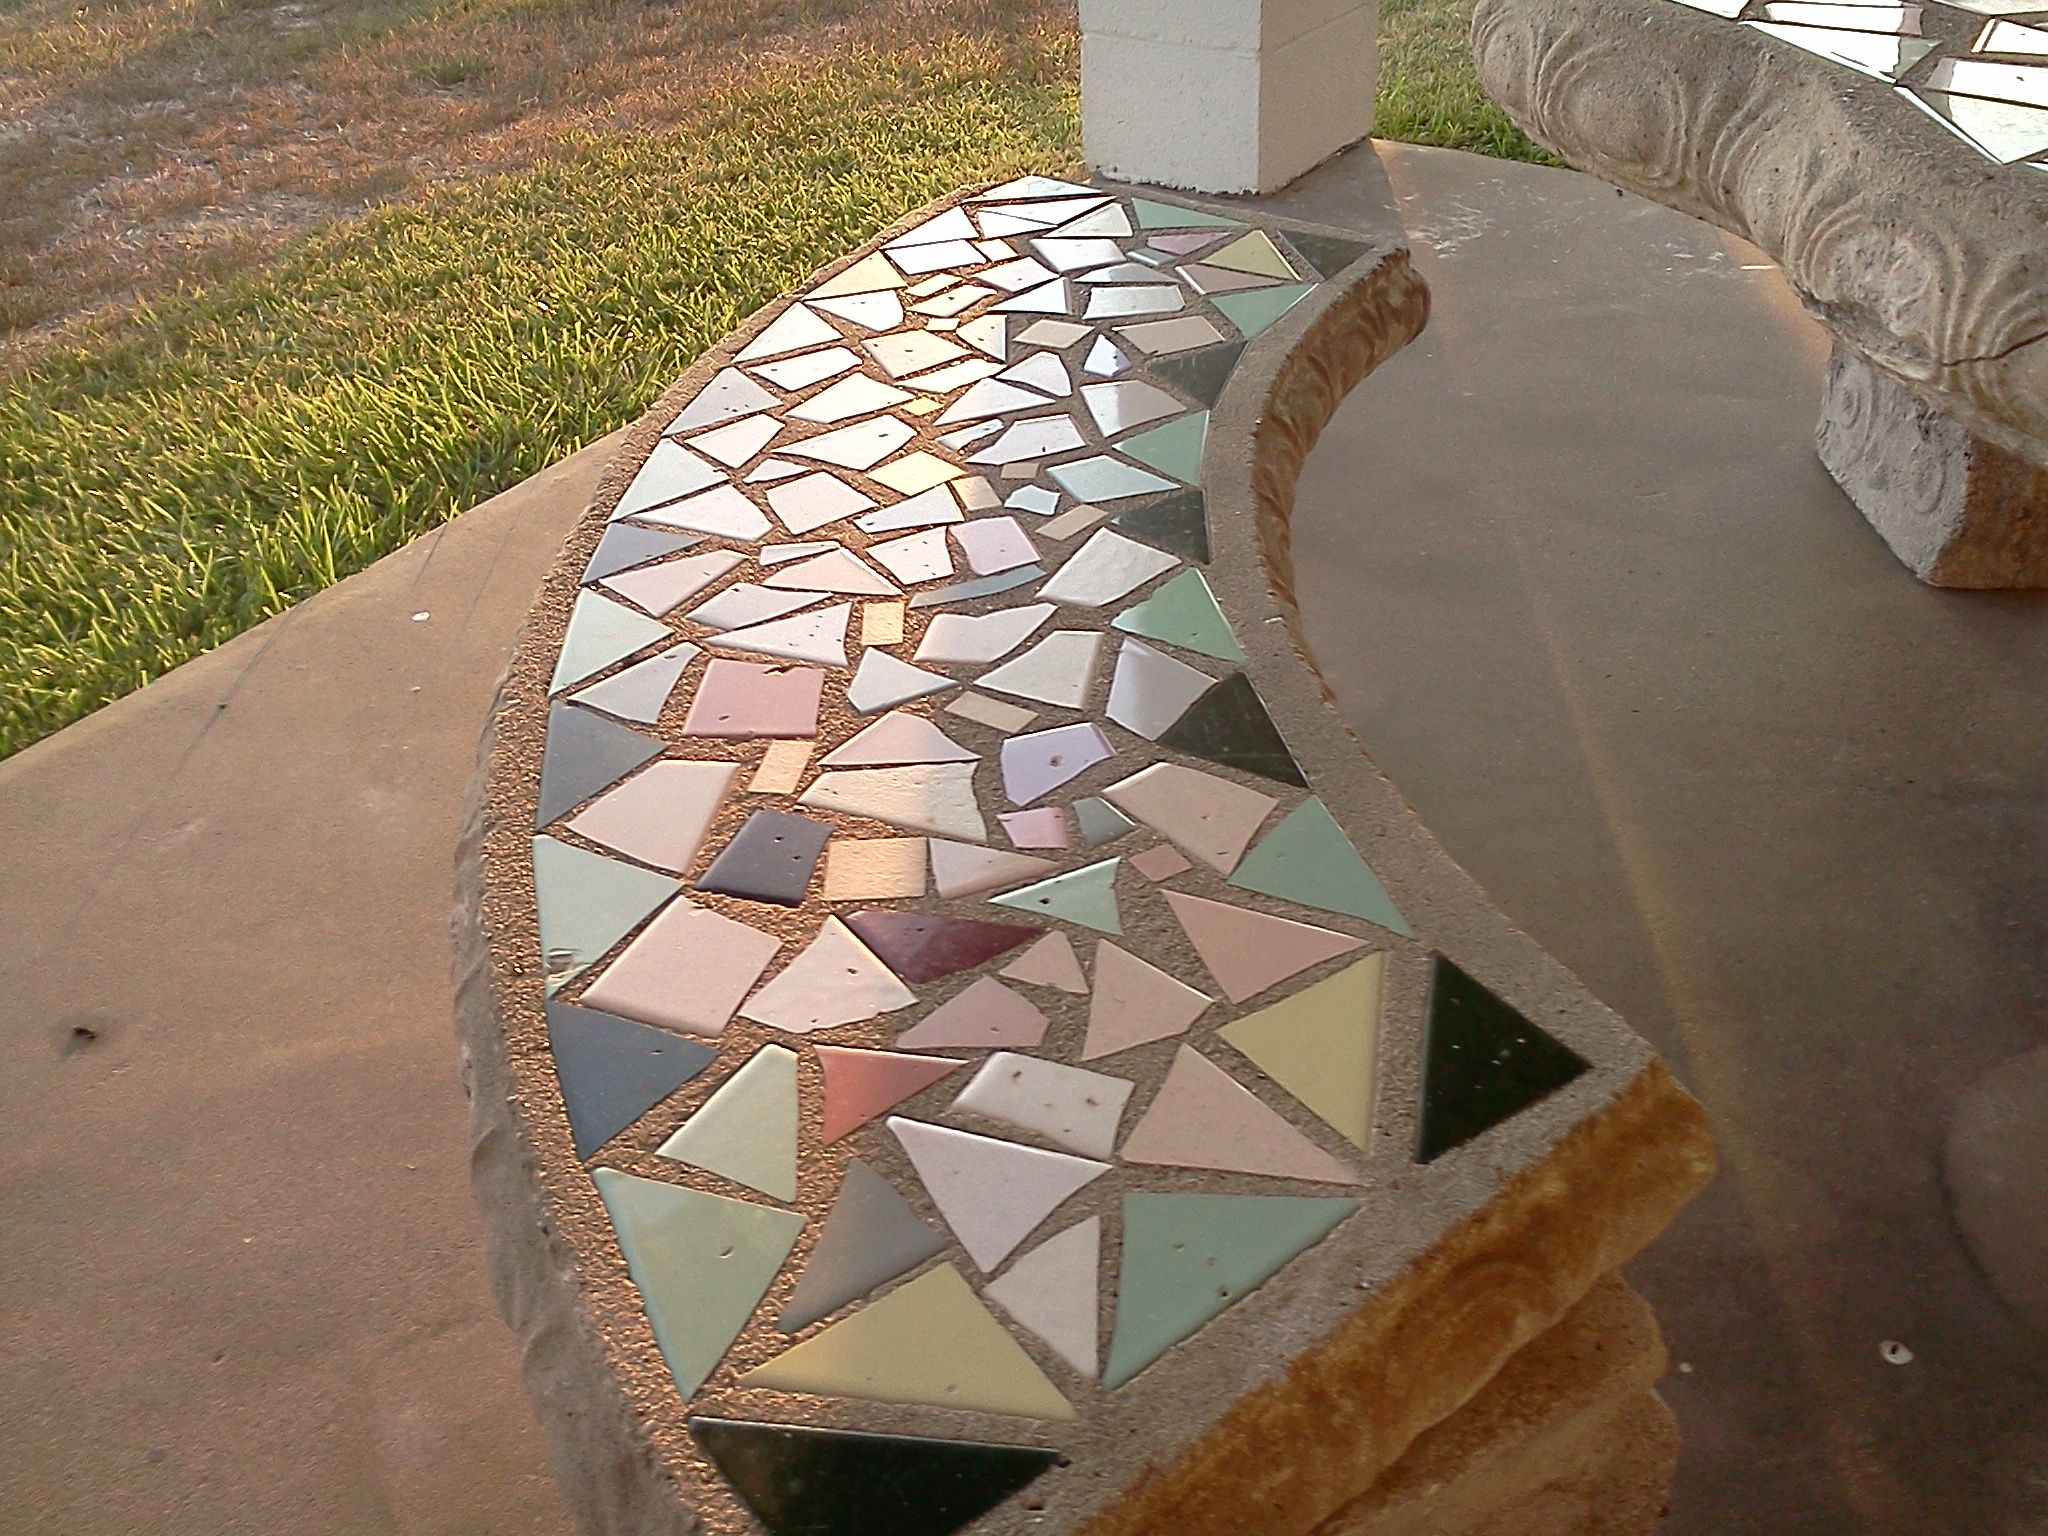 Pin By Michelle Rendon On Mosaic Me Crazy Cement Bench Mosaic Tile Designs Mosaic Tiles